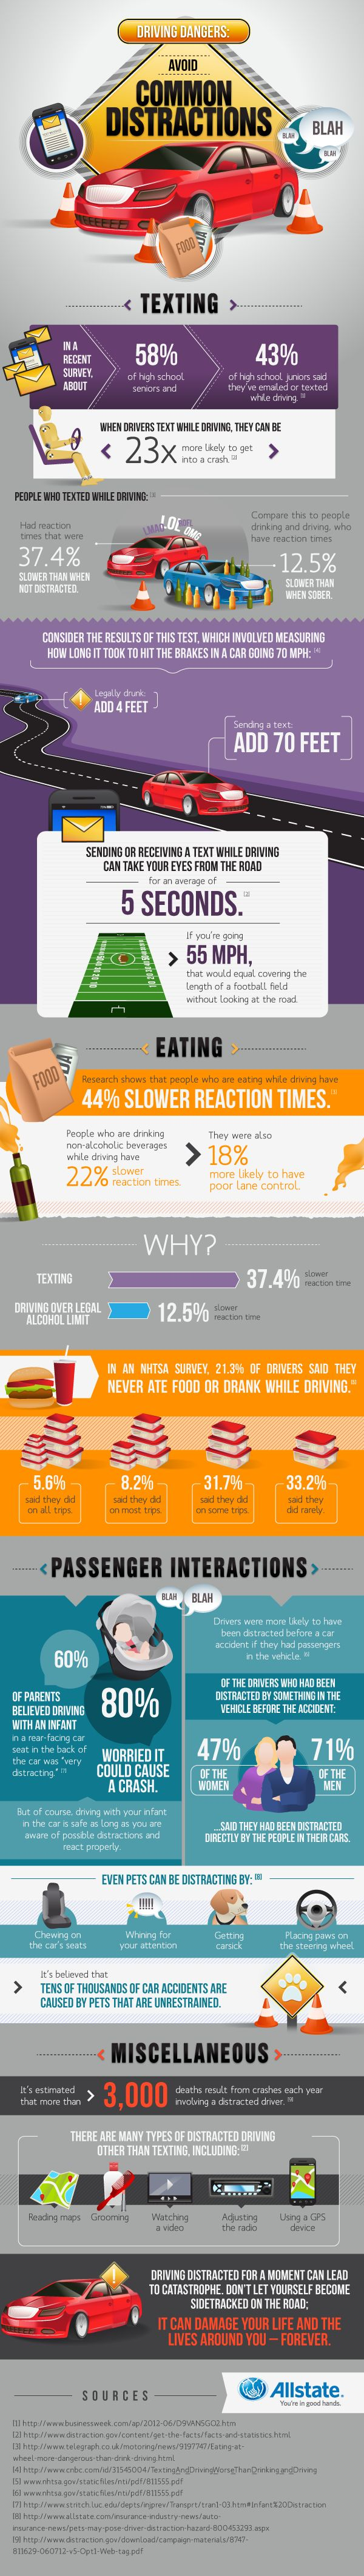 Distracted Driving Statistics! Seriously crazy. Did you know that texting while driving slows your reaction time more than alcohol??